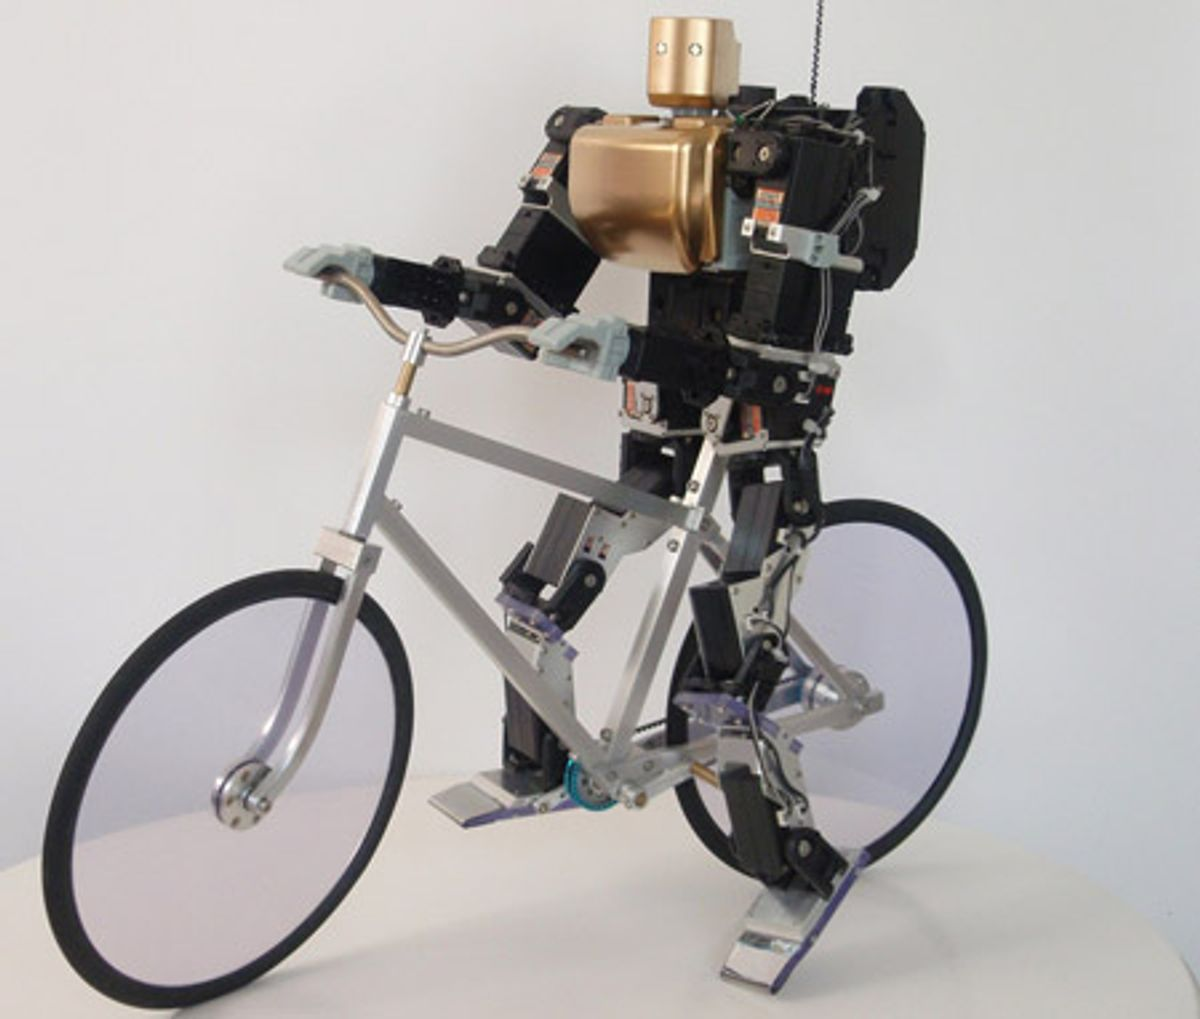 Hobby Robot Rides a Bike the Old-Fashioned Way